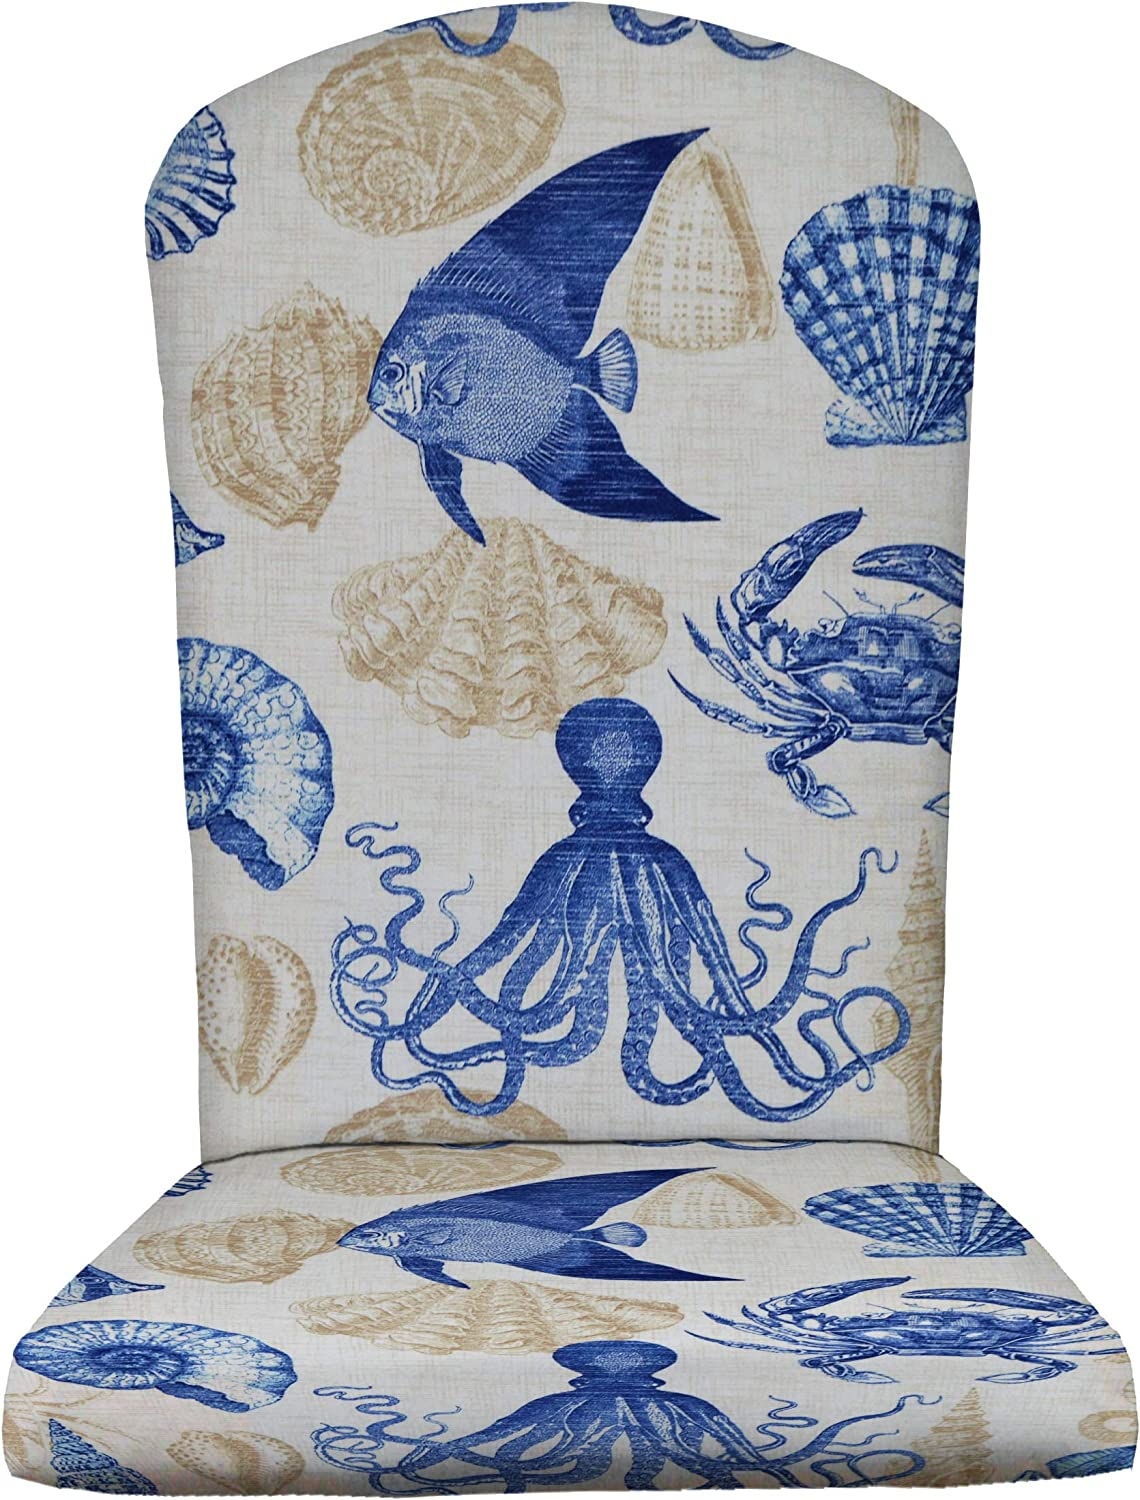 RSH Décor Outdoor Patio Decorative Foam Adirondack Chair Seat Cushion, Weather Resistant, Choose Color (Blue Tan Crab Sealife Marine)